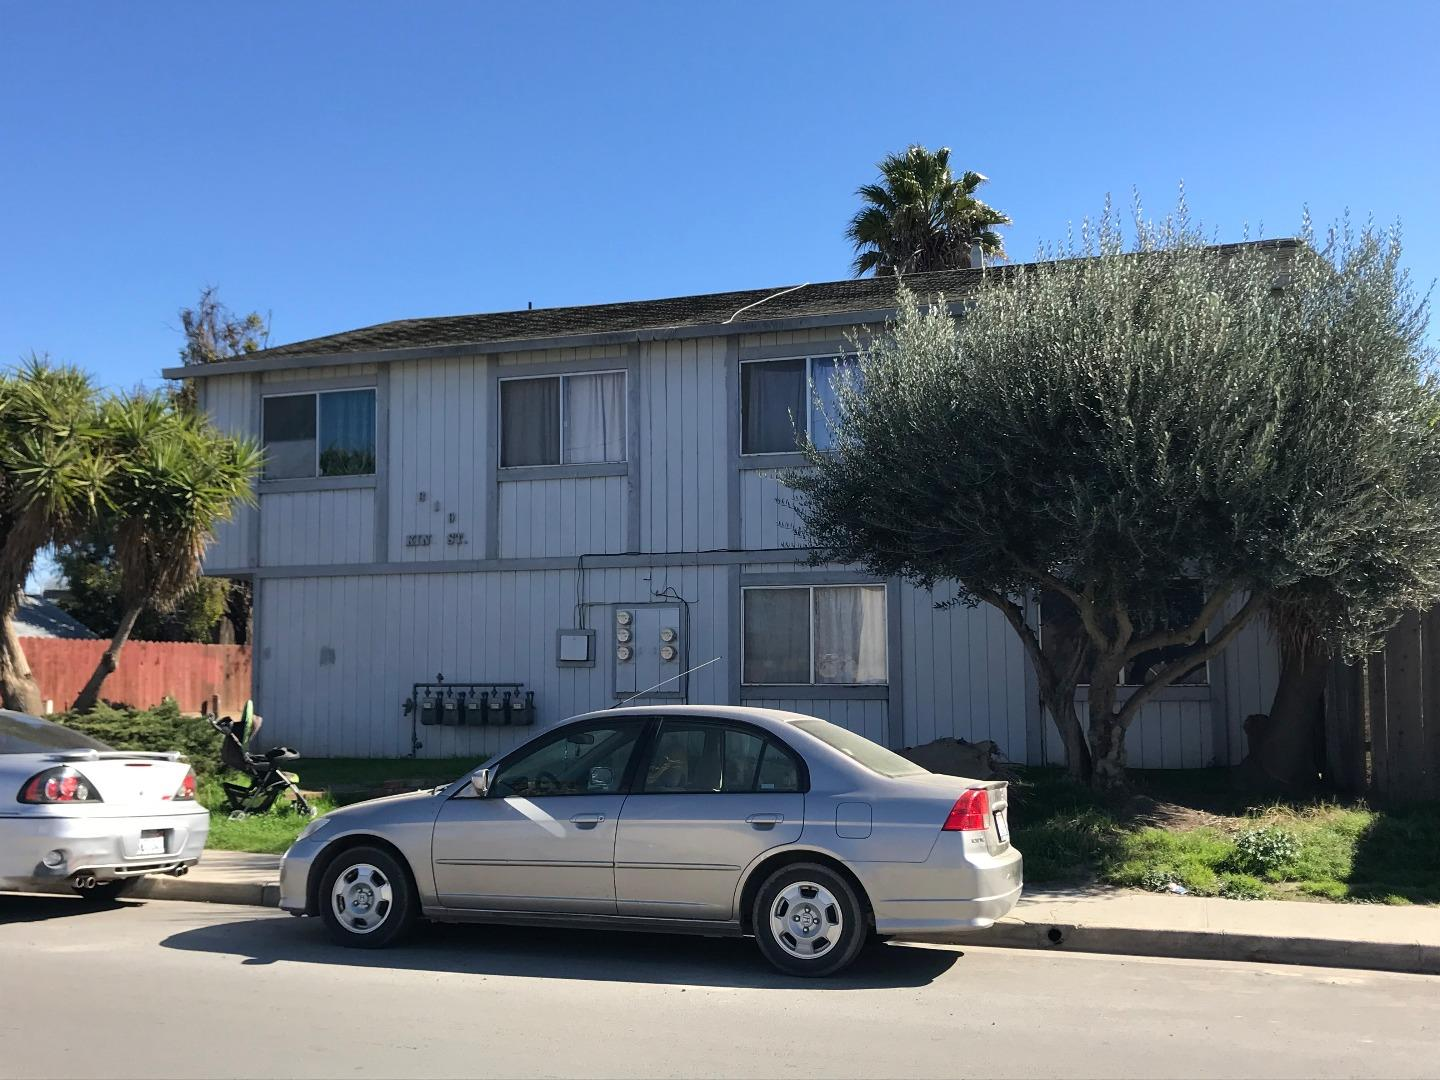 Multi-Family Home for Sale at 319 King Street 319 King Street King City, California 93930 United States